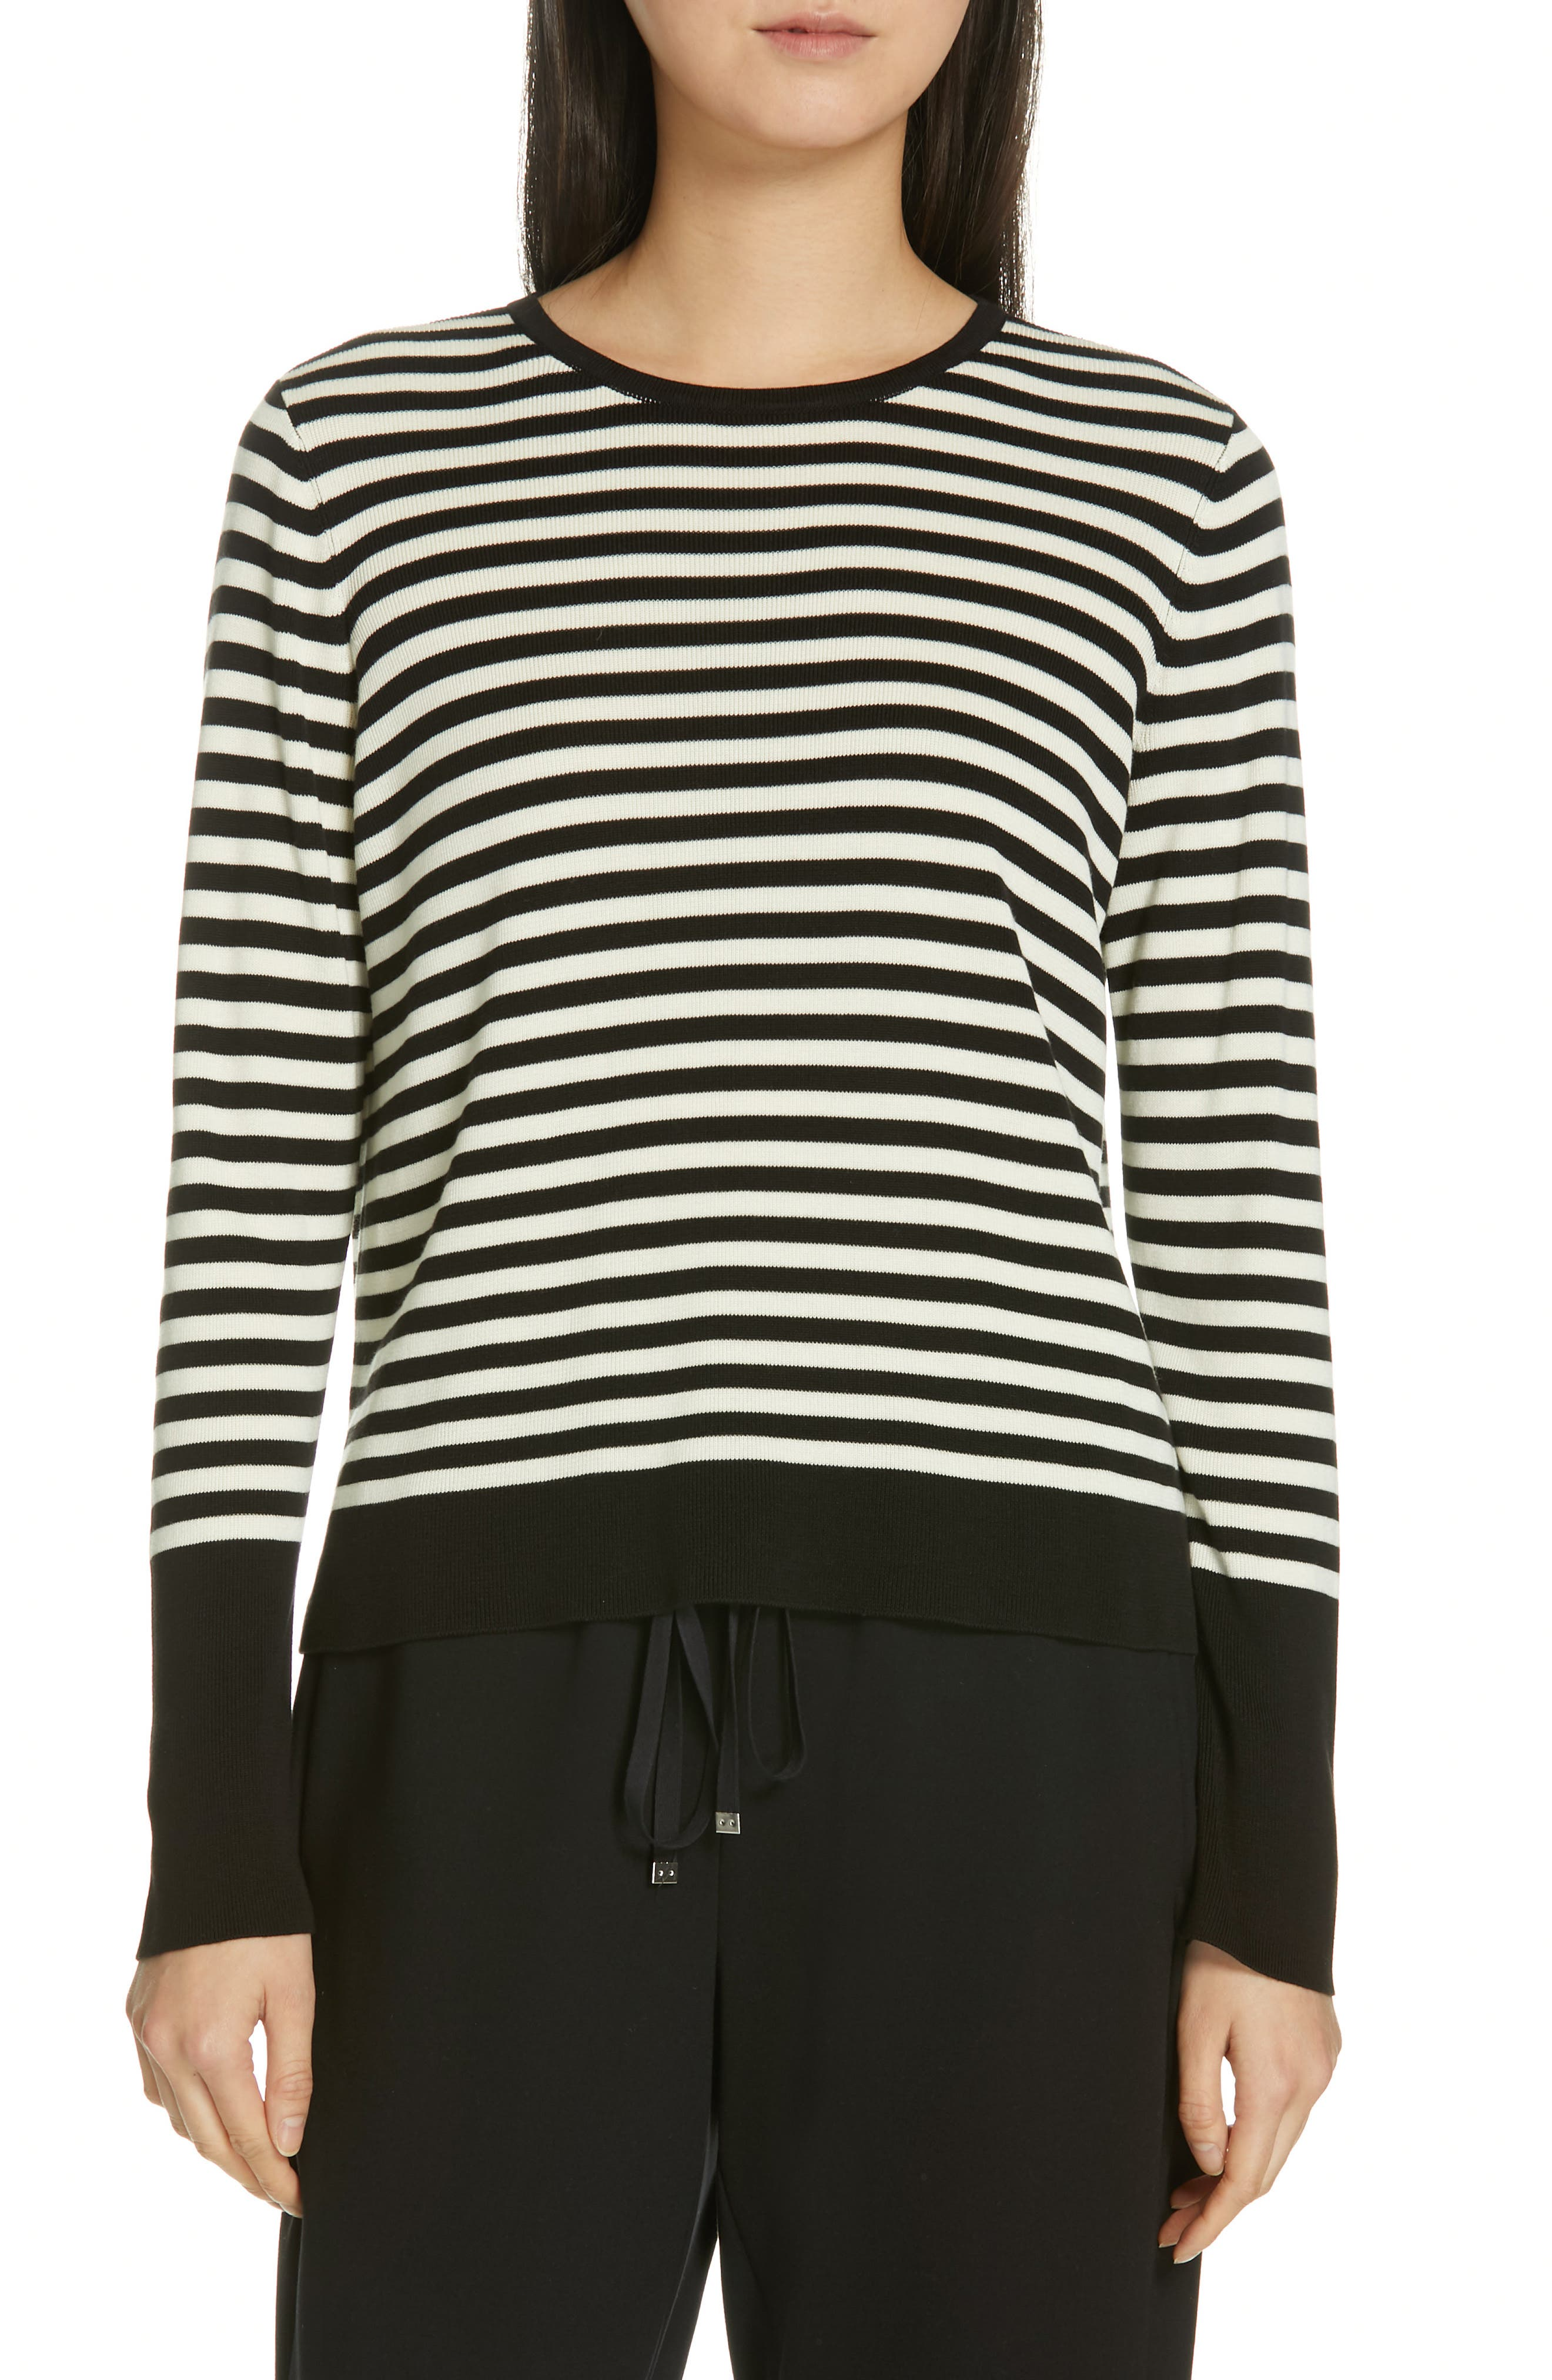 Tencel<sup>®</sup> Lyocell & Silk Sweater,                         Main,                         color, BLACK/ SOFT WHITE